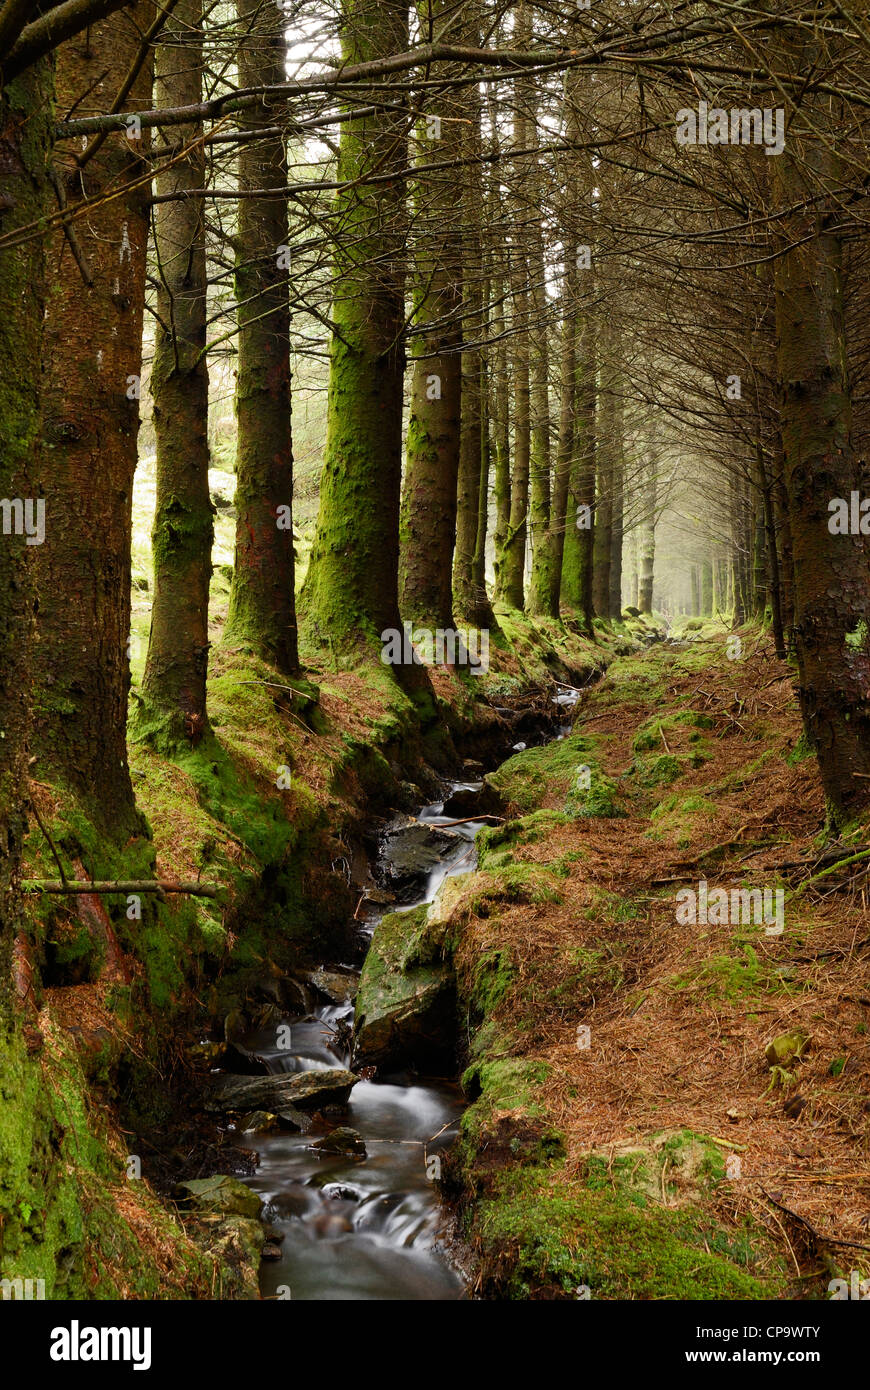 Stream running through a pine forest in North wales, UK. - Stock Image